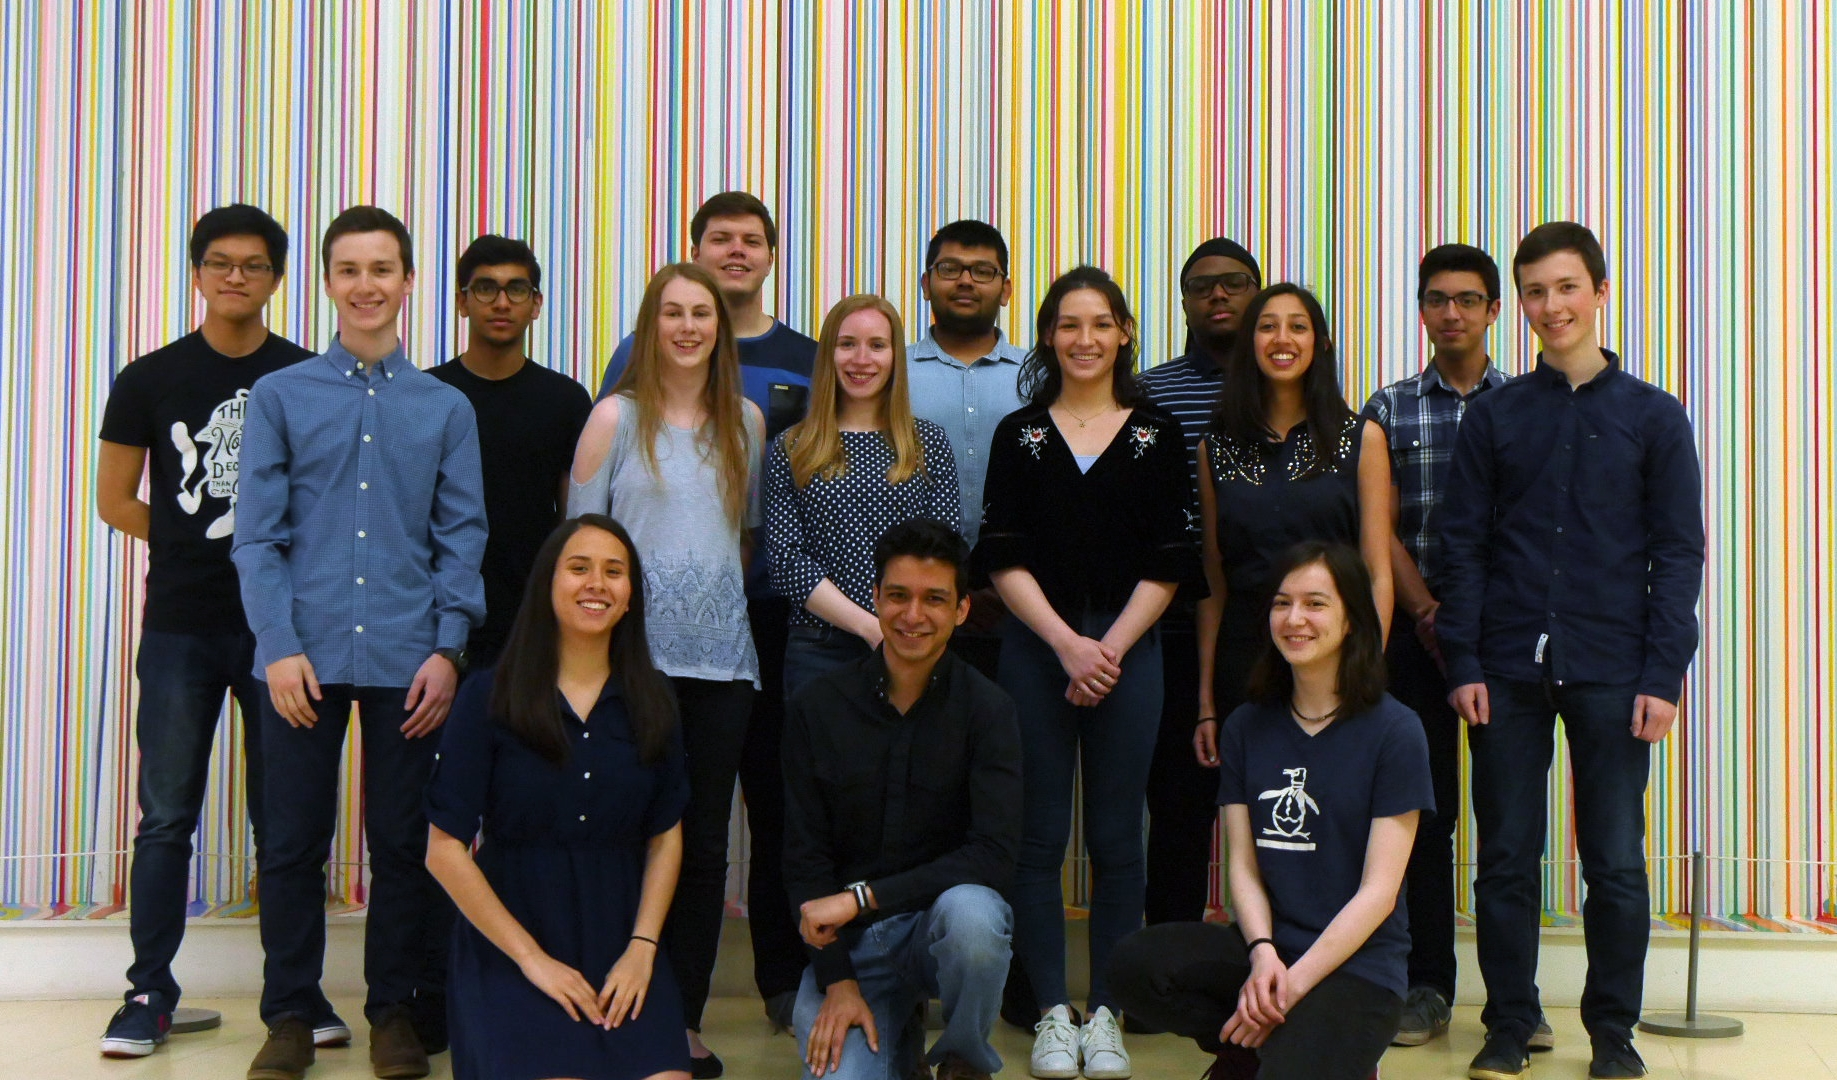 The Executive Team for 2018 - 2019.  Left to Right; Front Row:  Claire Douay ,  Khondker Shabaab ,  Sarah Hayes ; Middle Row:  Harry Adams ,  Hannah May ,  Isabella Curtis ,  Lara Lai ,  Karishma Desai ,  Jack Adams ; Back Row:  Varon Fung ,  Ishaan Verma ,  Thomas Lutey ,  Shadman Rafid ,  Christian Nyamali ,  Aaron Carver .